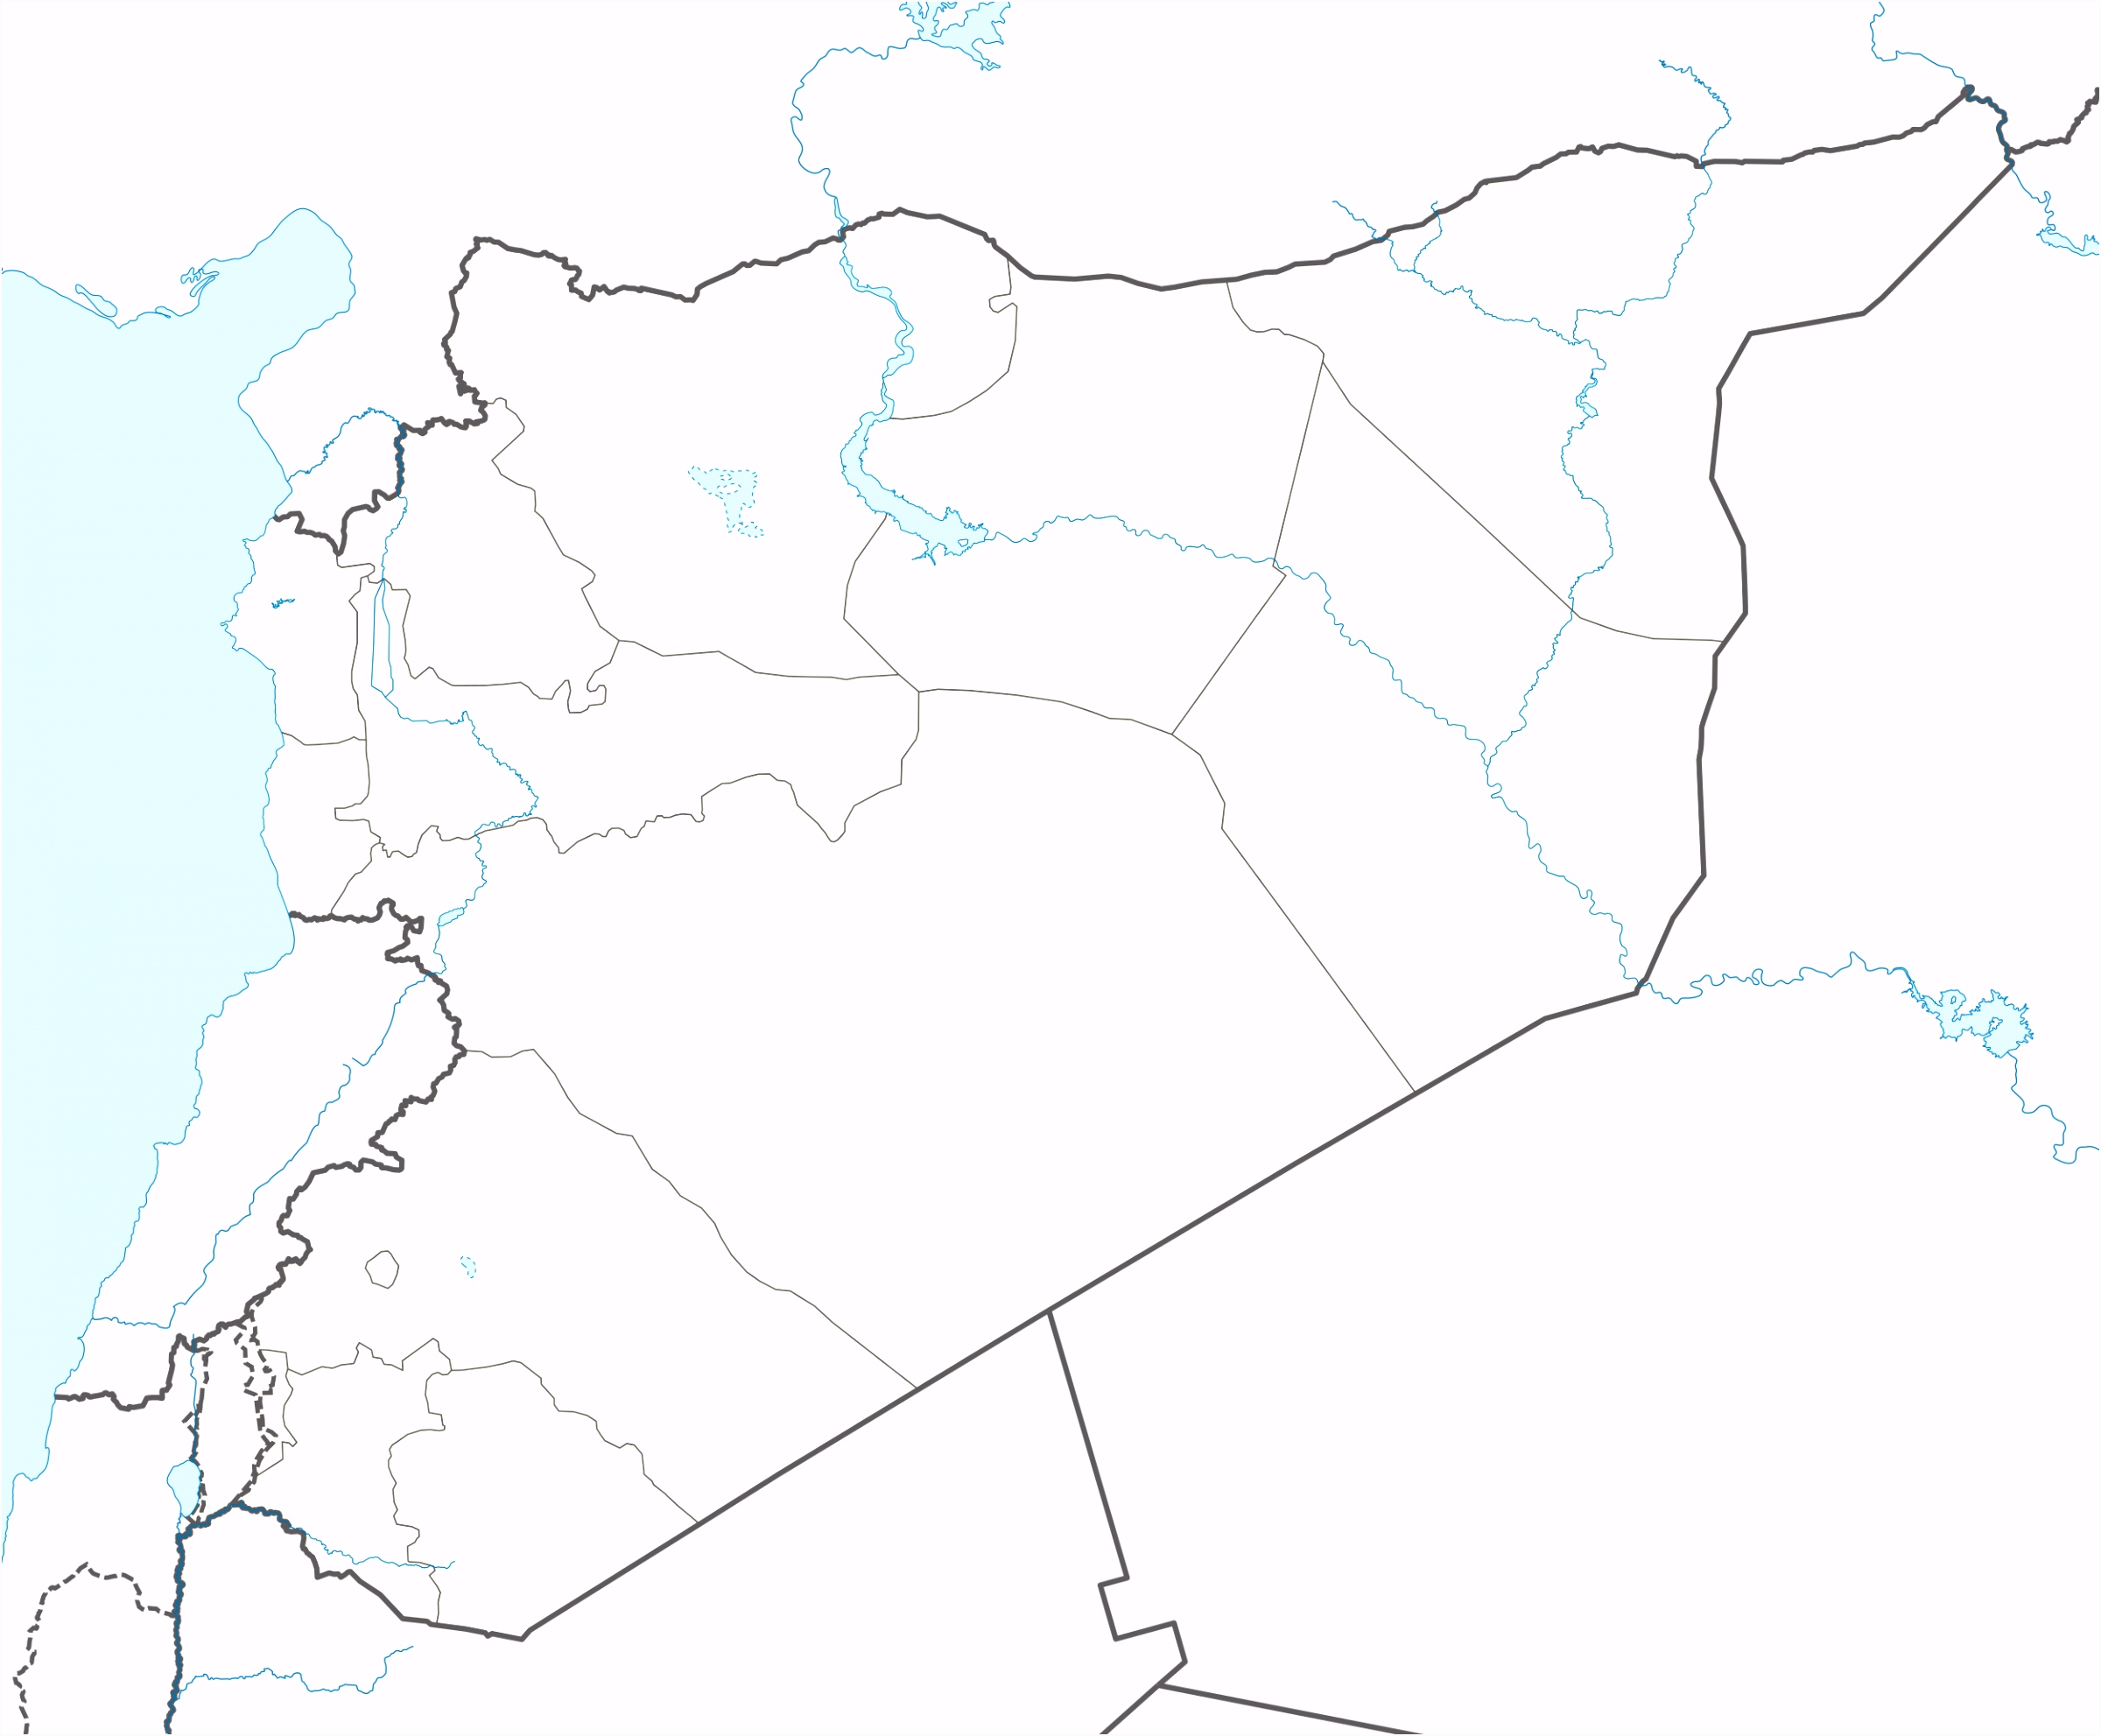 Template Syrian Civil War detailed map